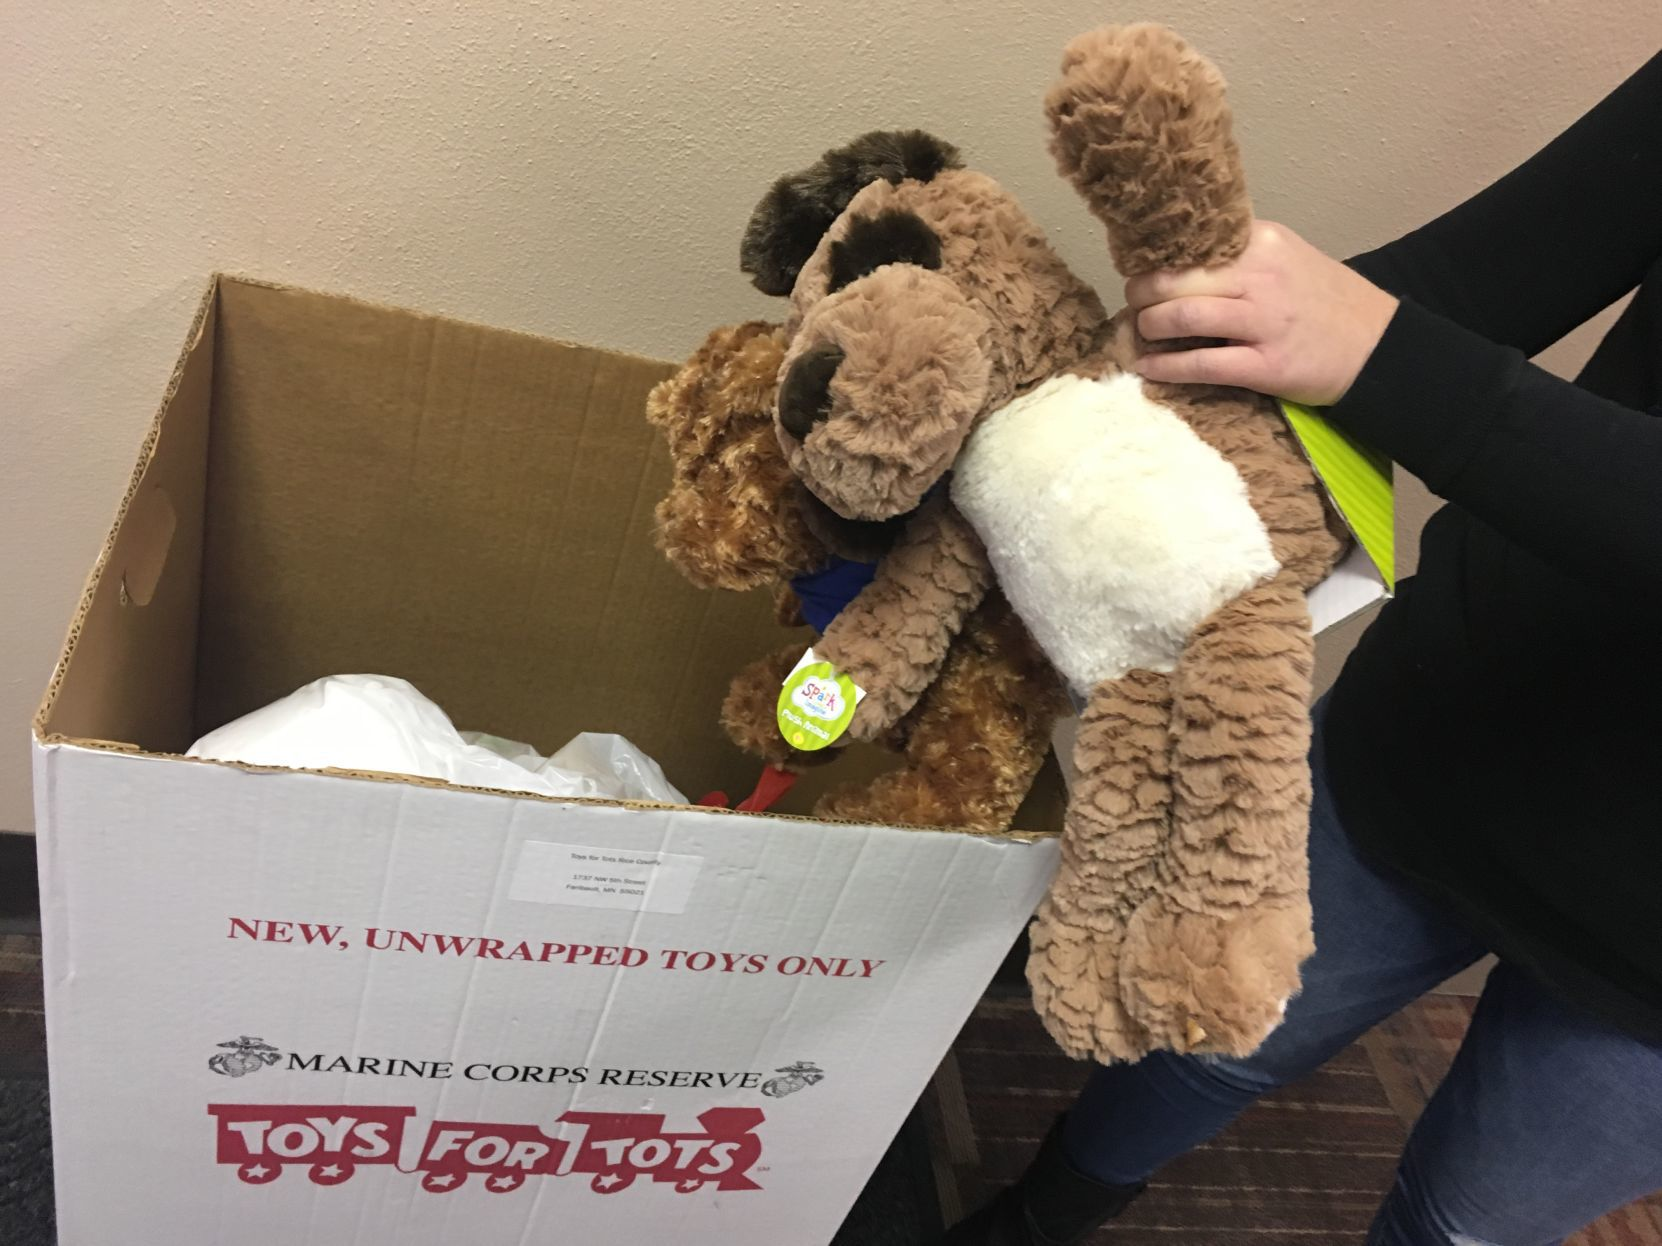 Toys For Tots Volunteer : Toys for tots accepting applications for recipients volunteers